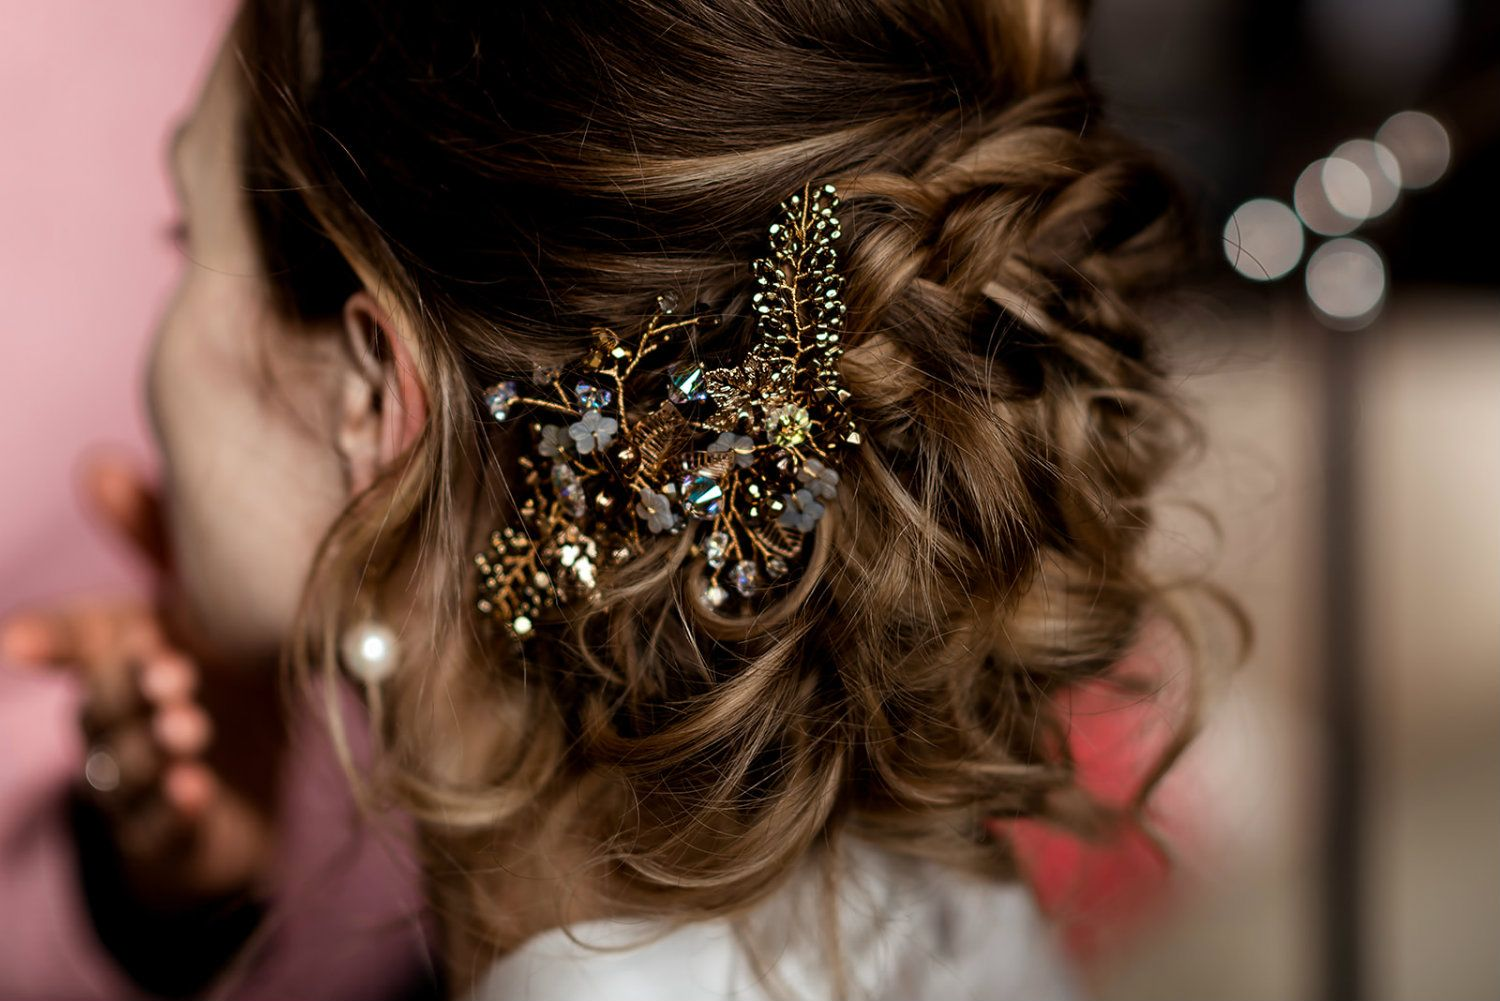 Bespoke-occasion & wedding-hair-accessories- UK-JNI 17.jpg